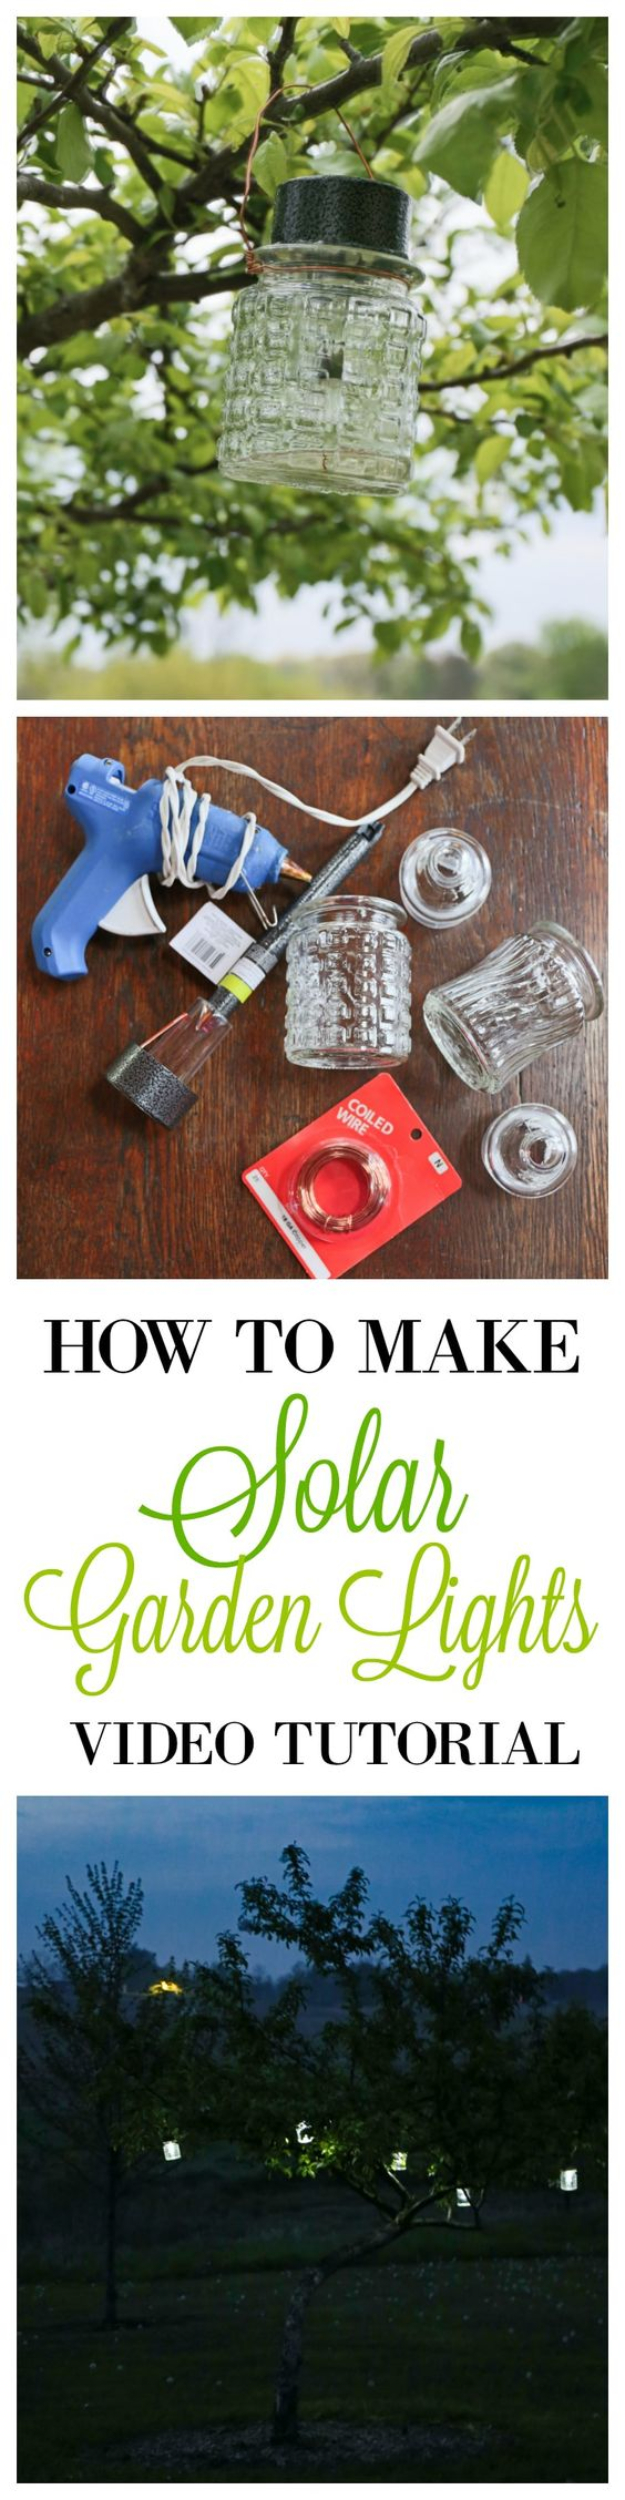 DIY Solar Powered Projects - DIY Solar Garden Lights - Easy Solar Crafts and DYI Ideas for Making Solar Power Things You Can Use To Save Energy - Step by Step Tutorials for Making Things Without Batteries - DIY Projects and Crafts for Men and Women